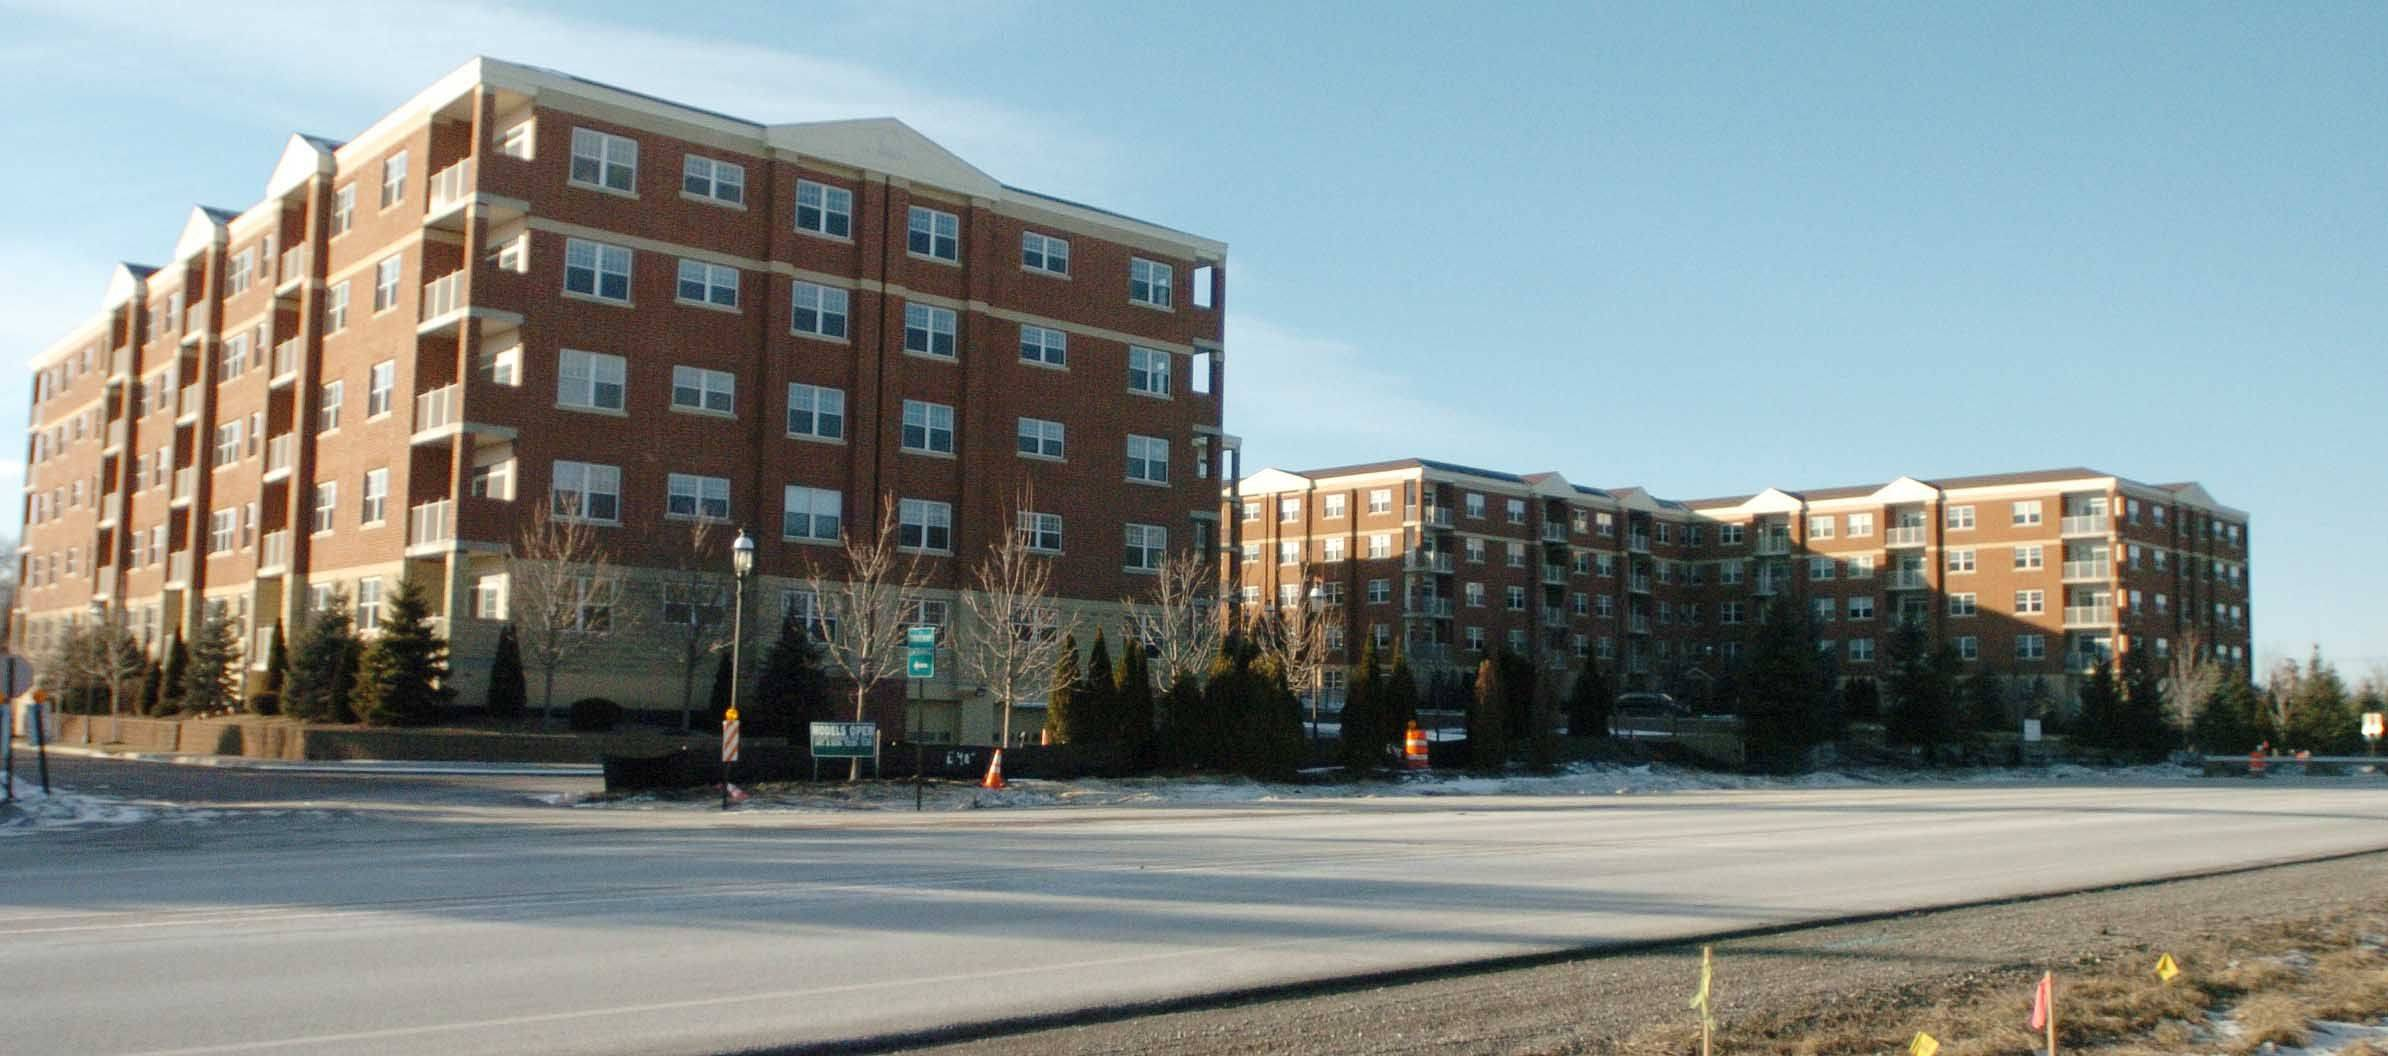 Some Itasca residents are split on whether one condominium building at the intersection of Nordic and Rohlwing roads should be converted to rental units, while the other remains condos.